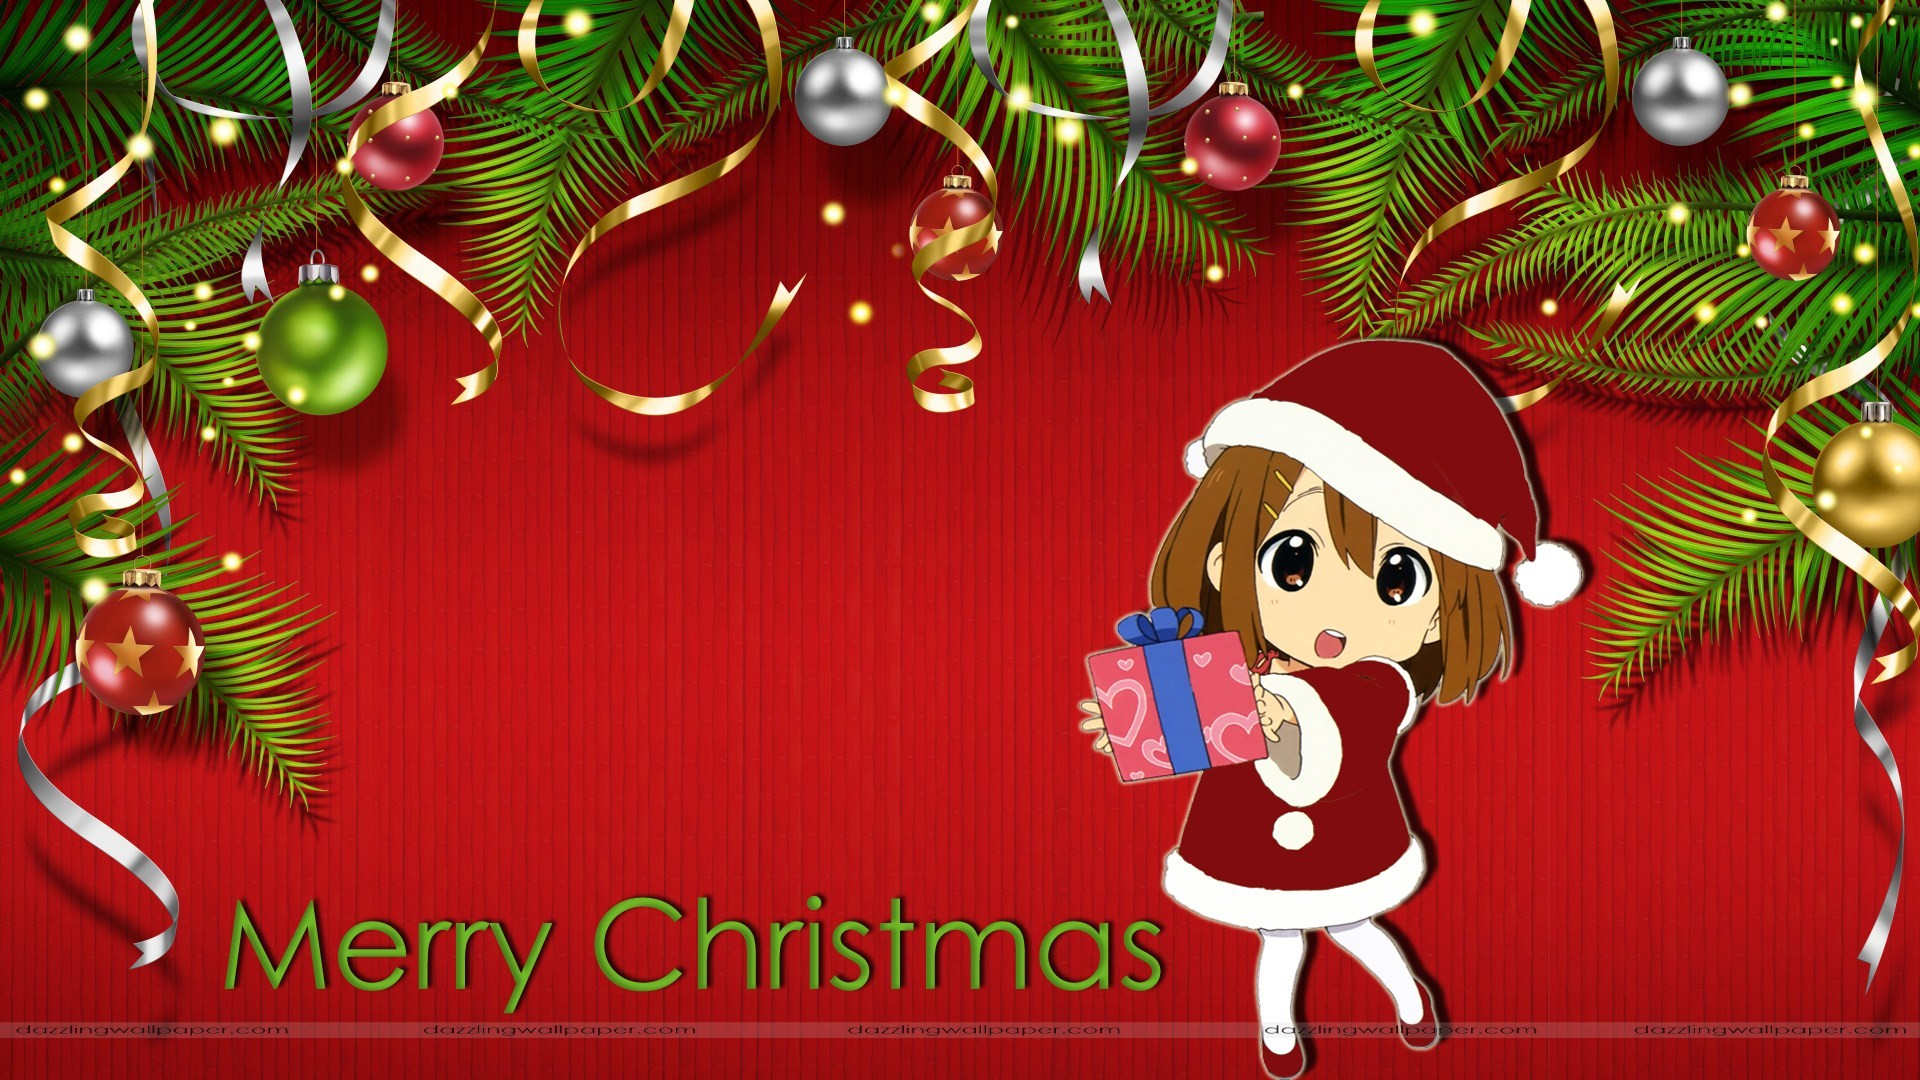 Cute Christmas Wallpapers: Cute Merry Christmas Wallpaper (64+ Images